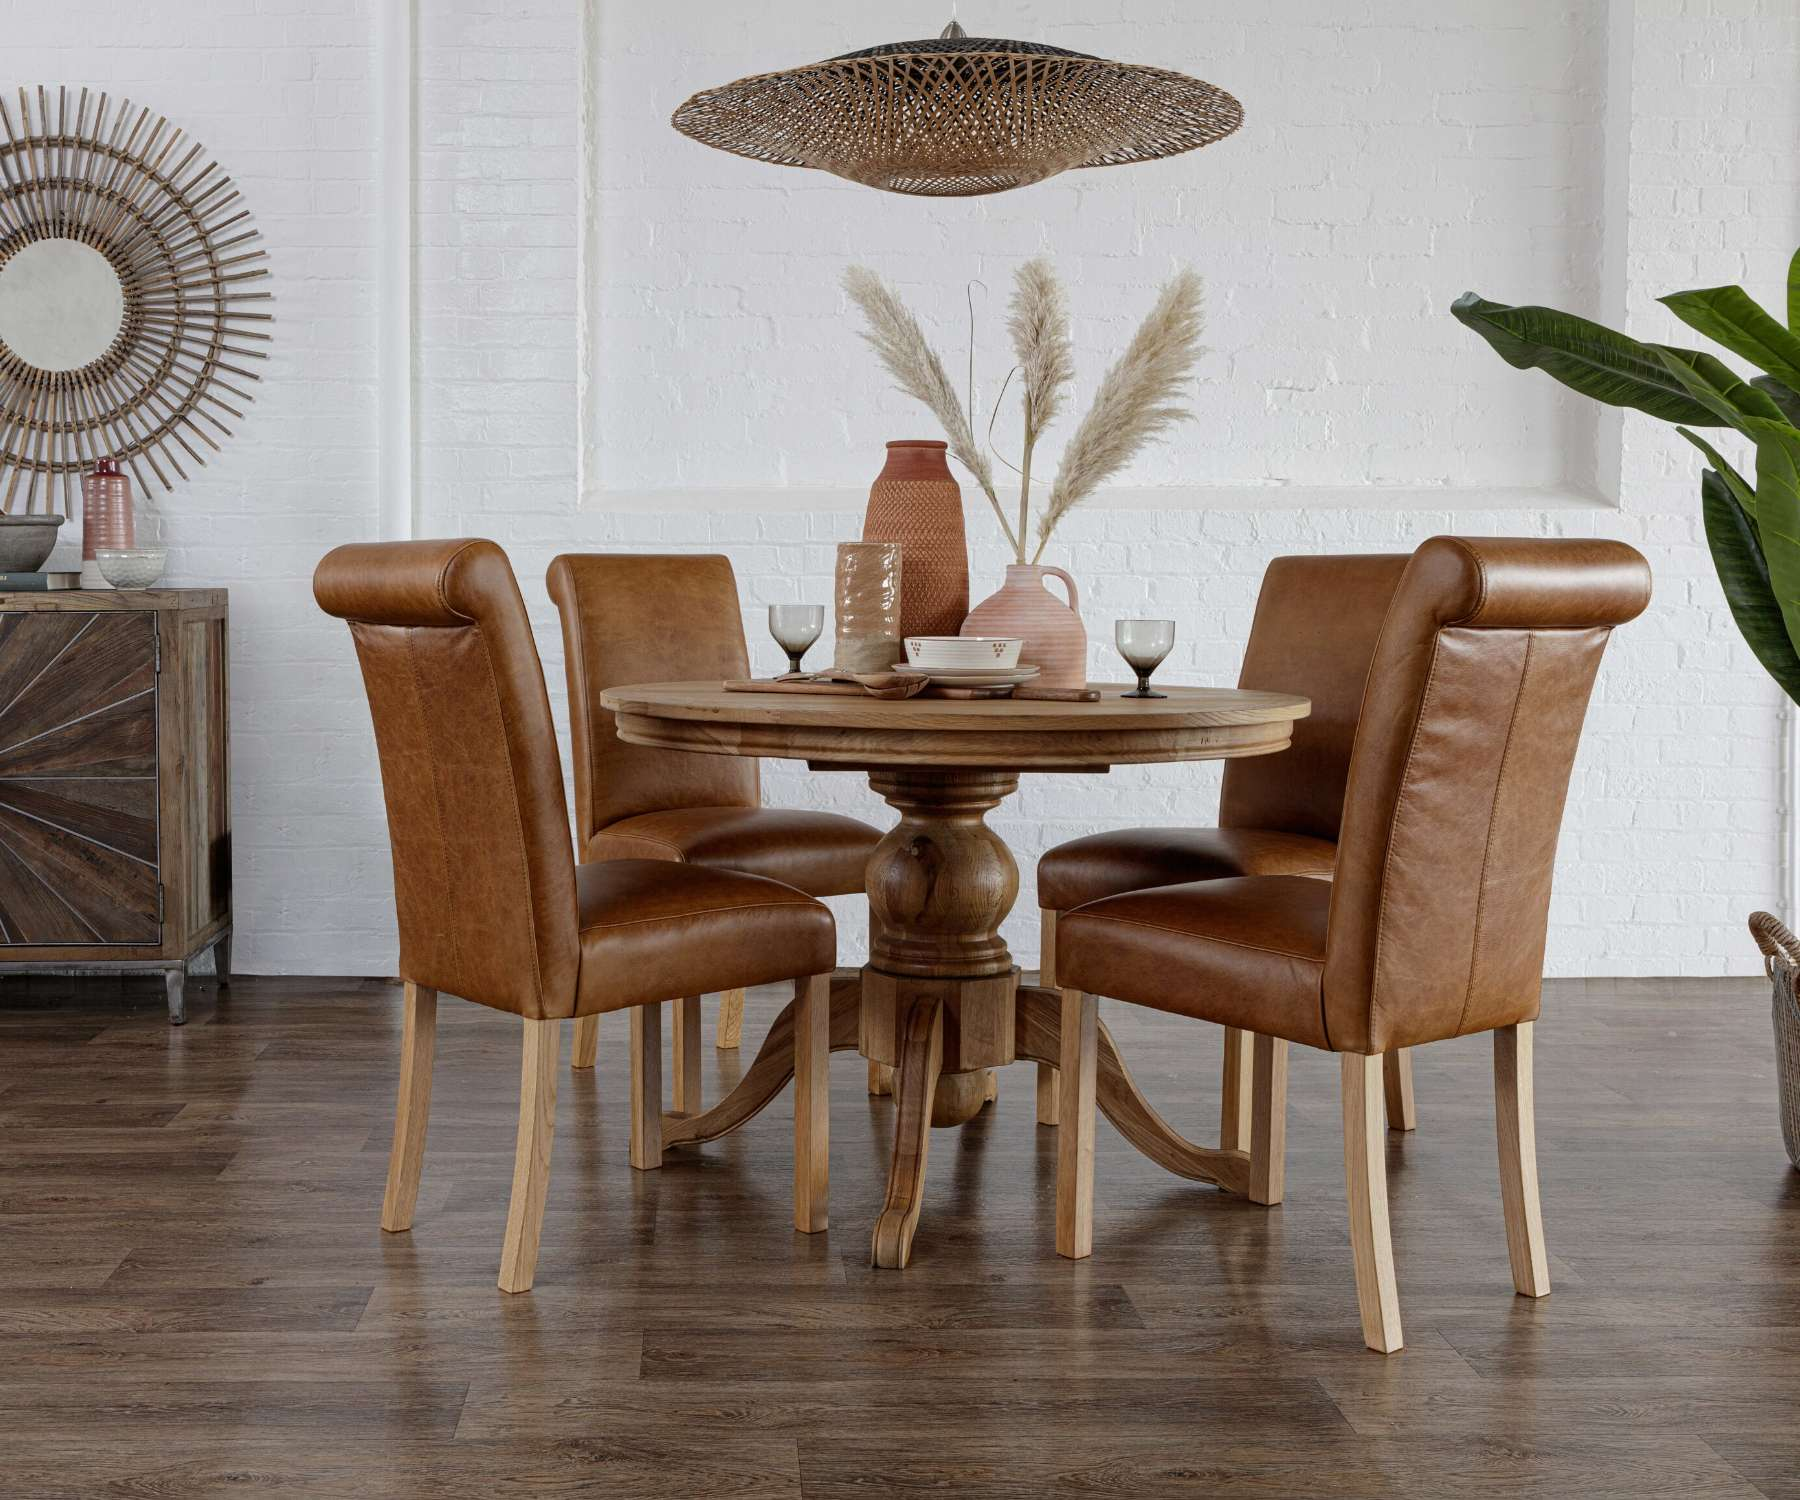 oak round dining table with brown faux leather chairs